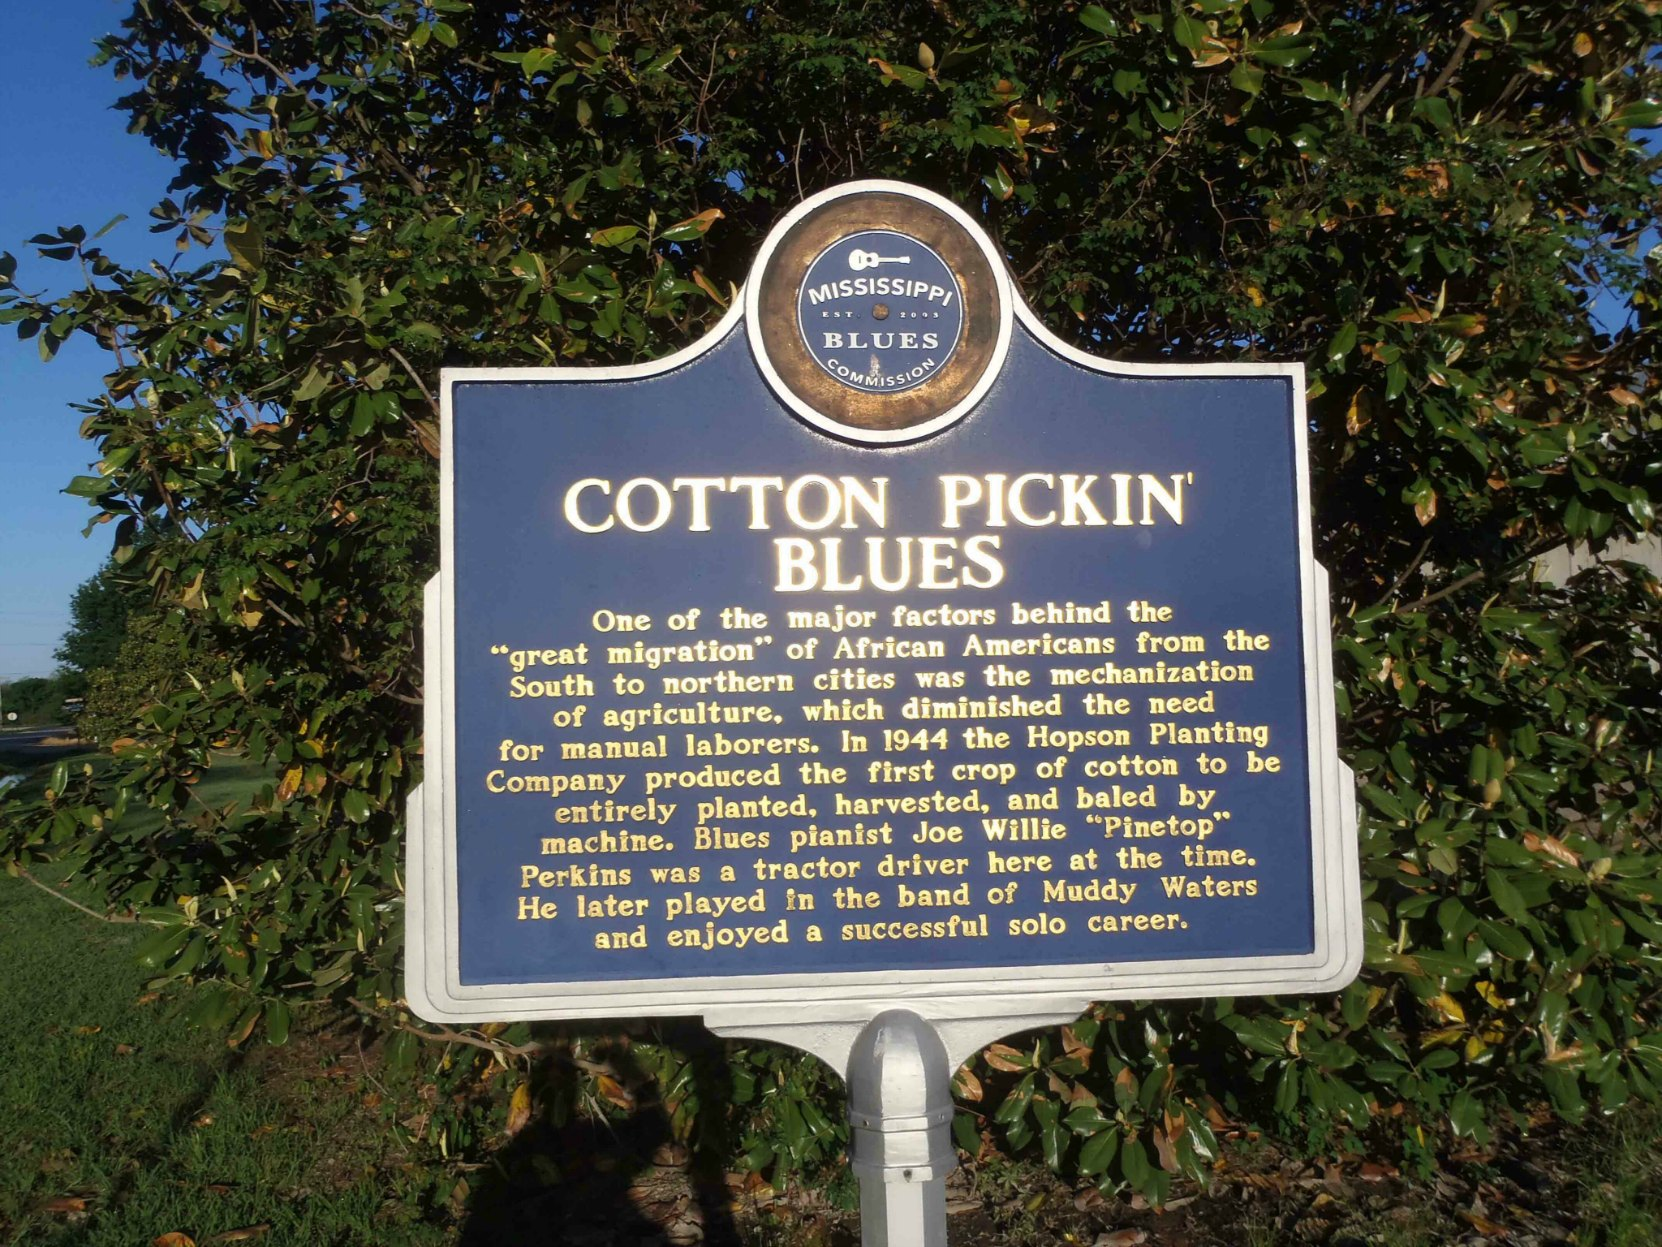 Mississippi Blues Trail marker for Cotton Pickin' Blues, Hopson Farm, Highway 49, Coahoma County, Mississippi.